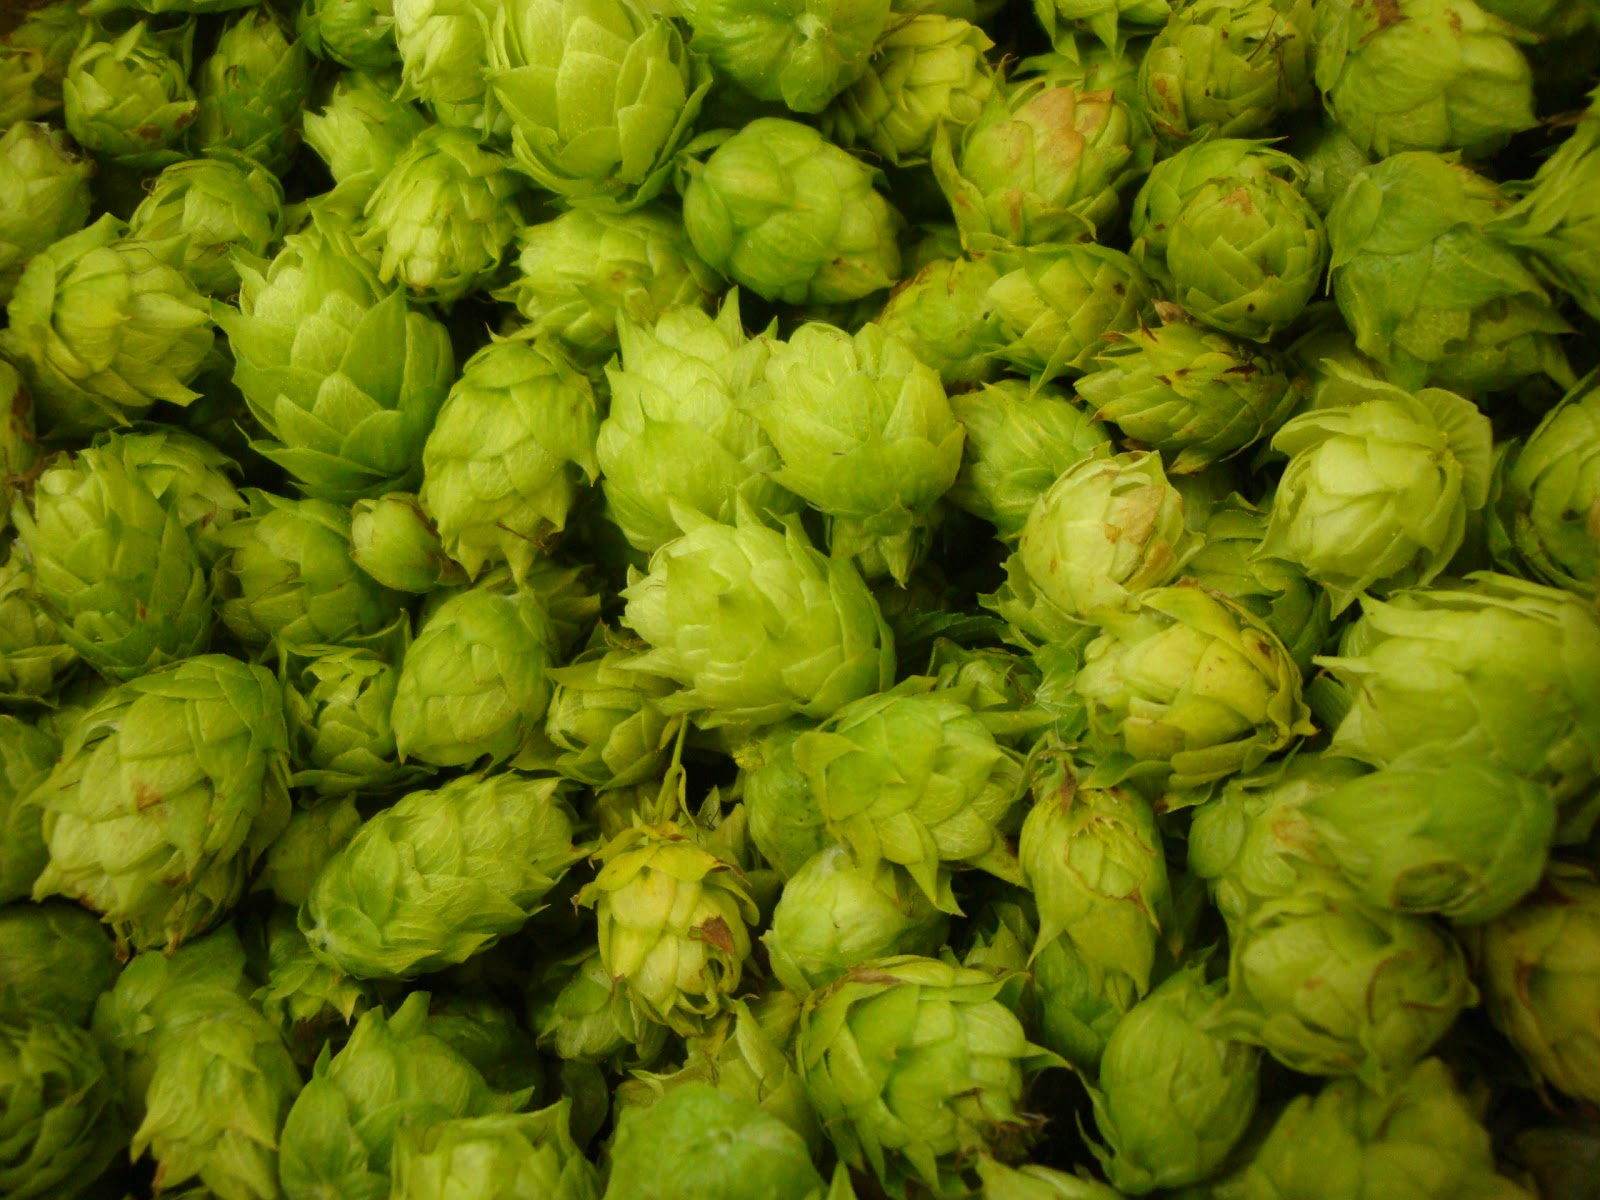 Bill pulled down the vines for me, and I plucked the hops. Right now ...